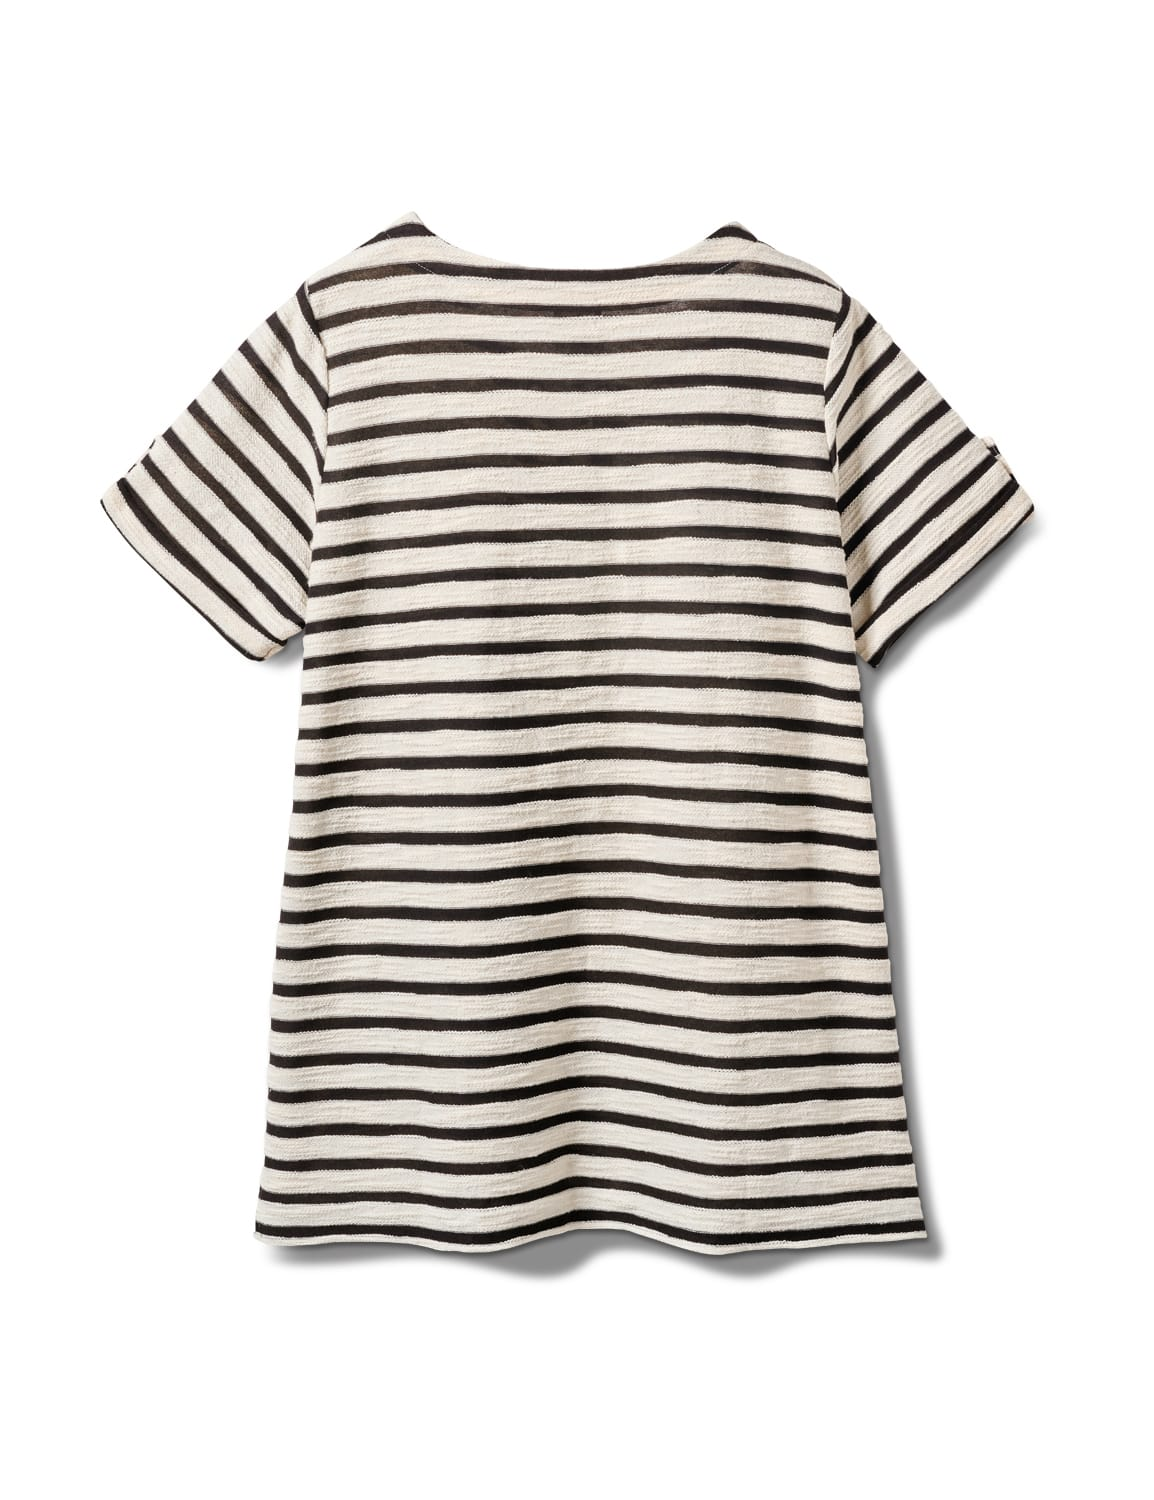 Lace Up Stripe Knit Top - Plus - Black/White - Back